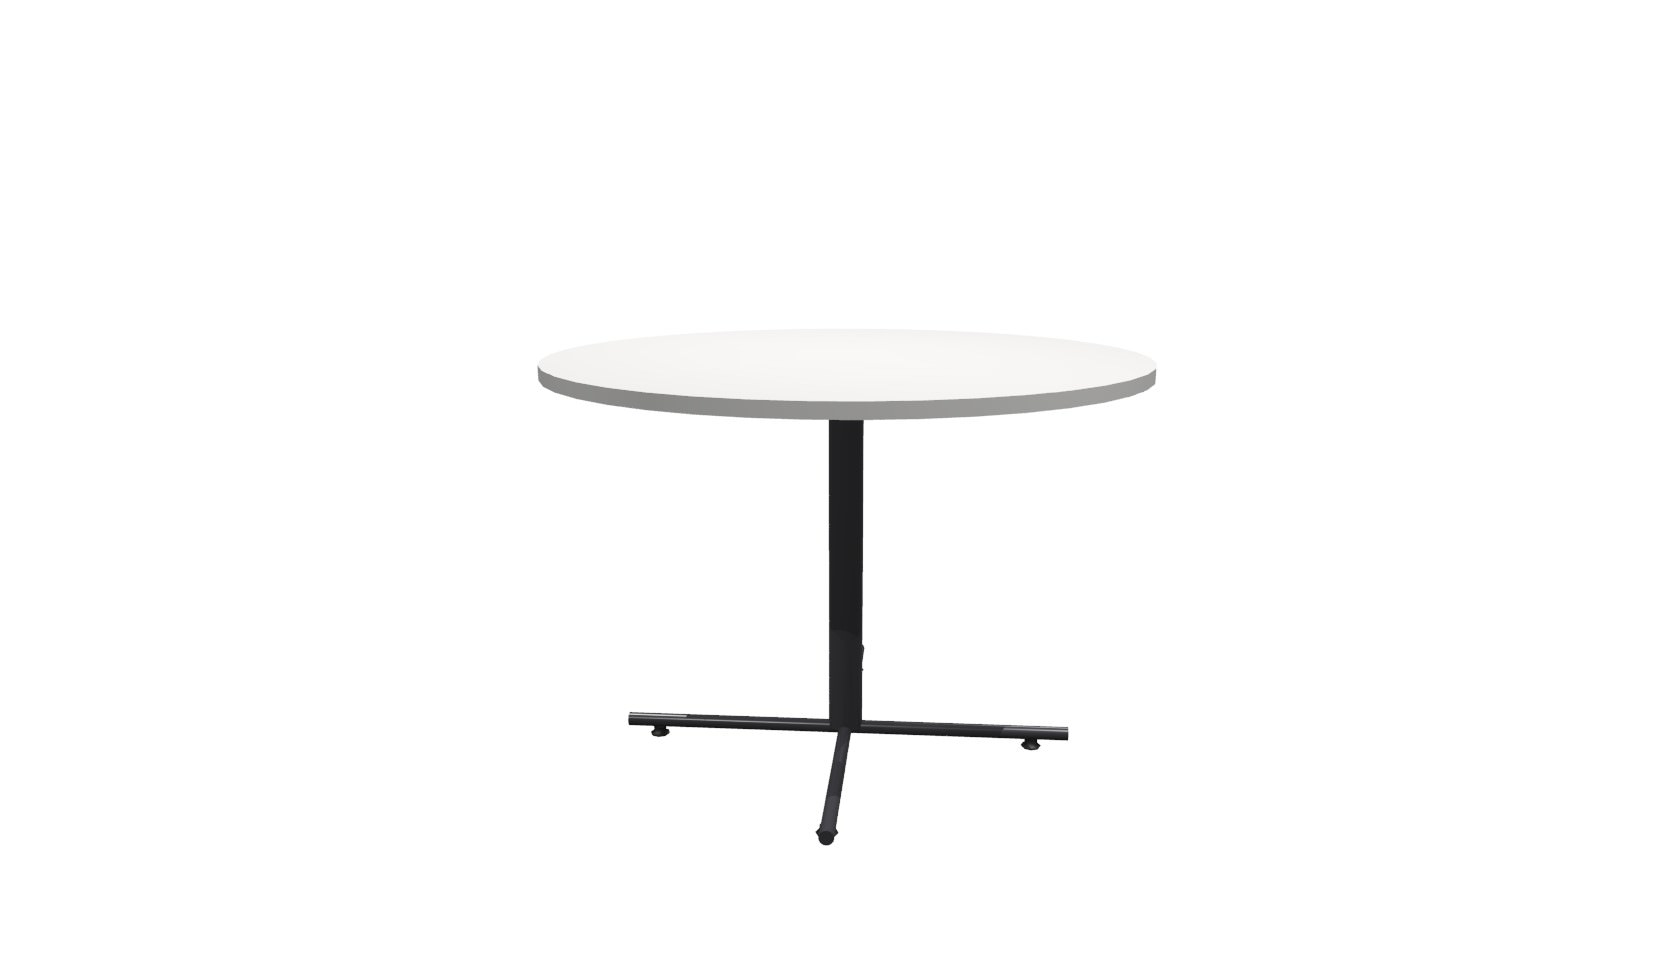 Inch Round Conference Table White Black - 42 inch round conference table